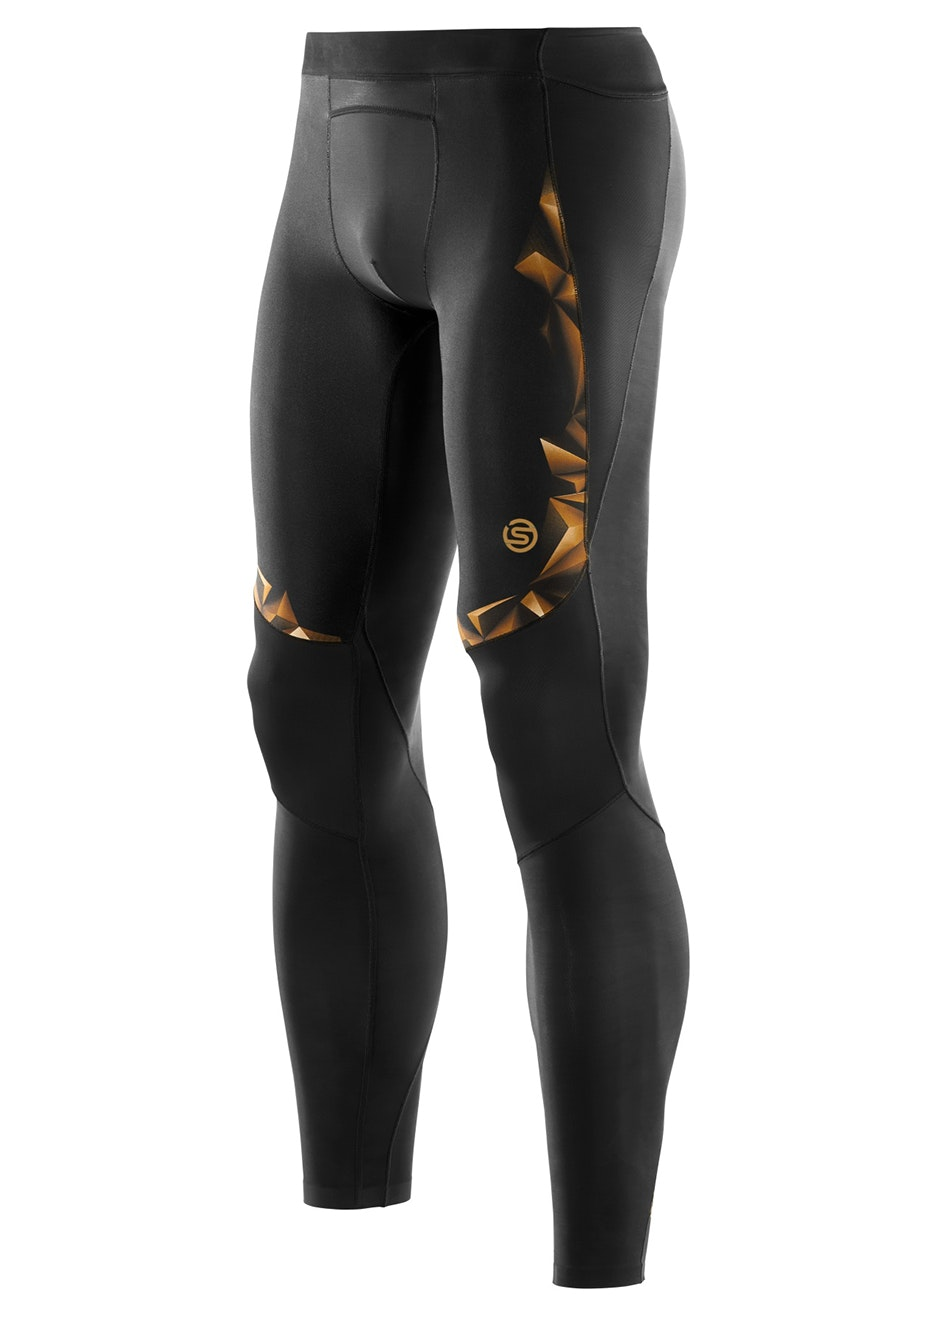 Skins - A400 Mens Gold Long Tights